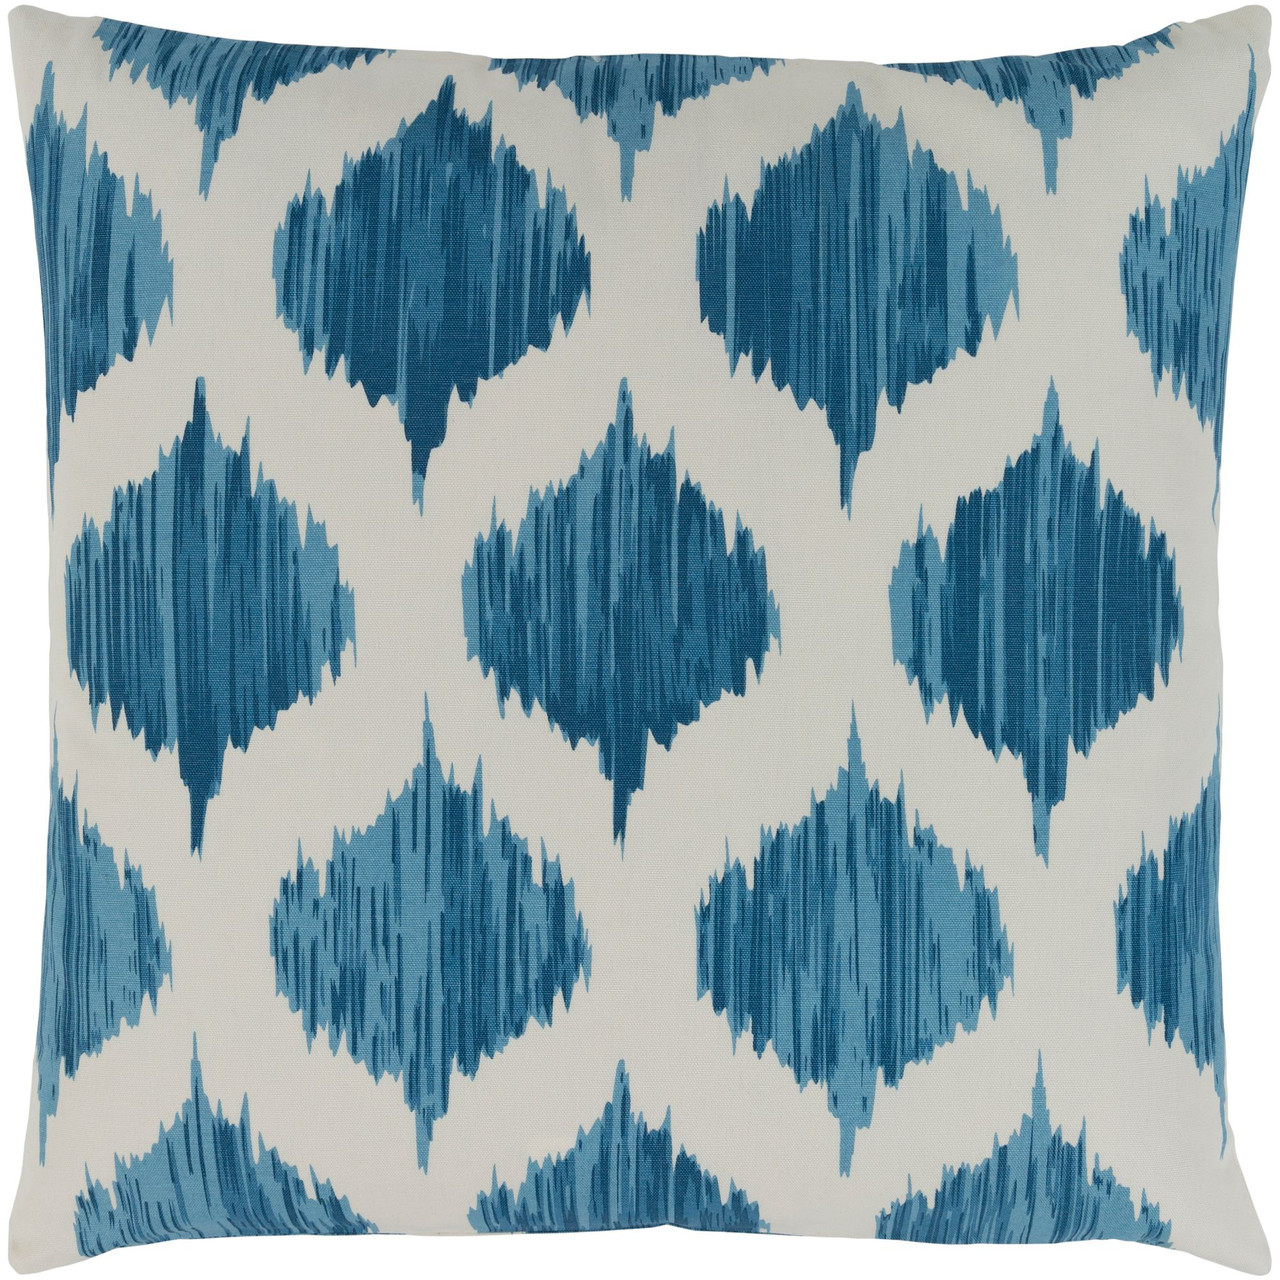 18 Blue White Seamless Patterned Square Throw Pillow Cover Christmas Central